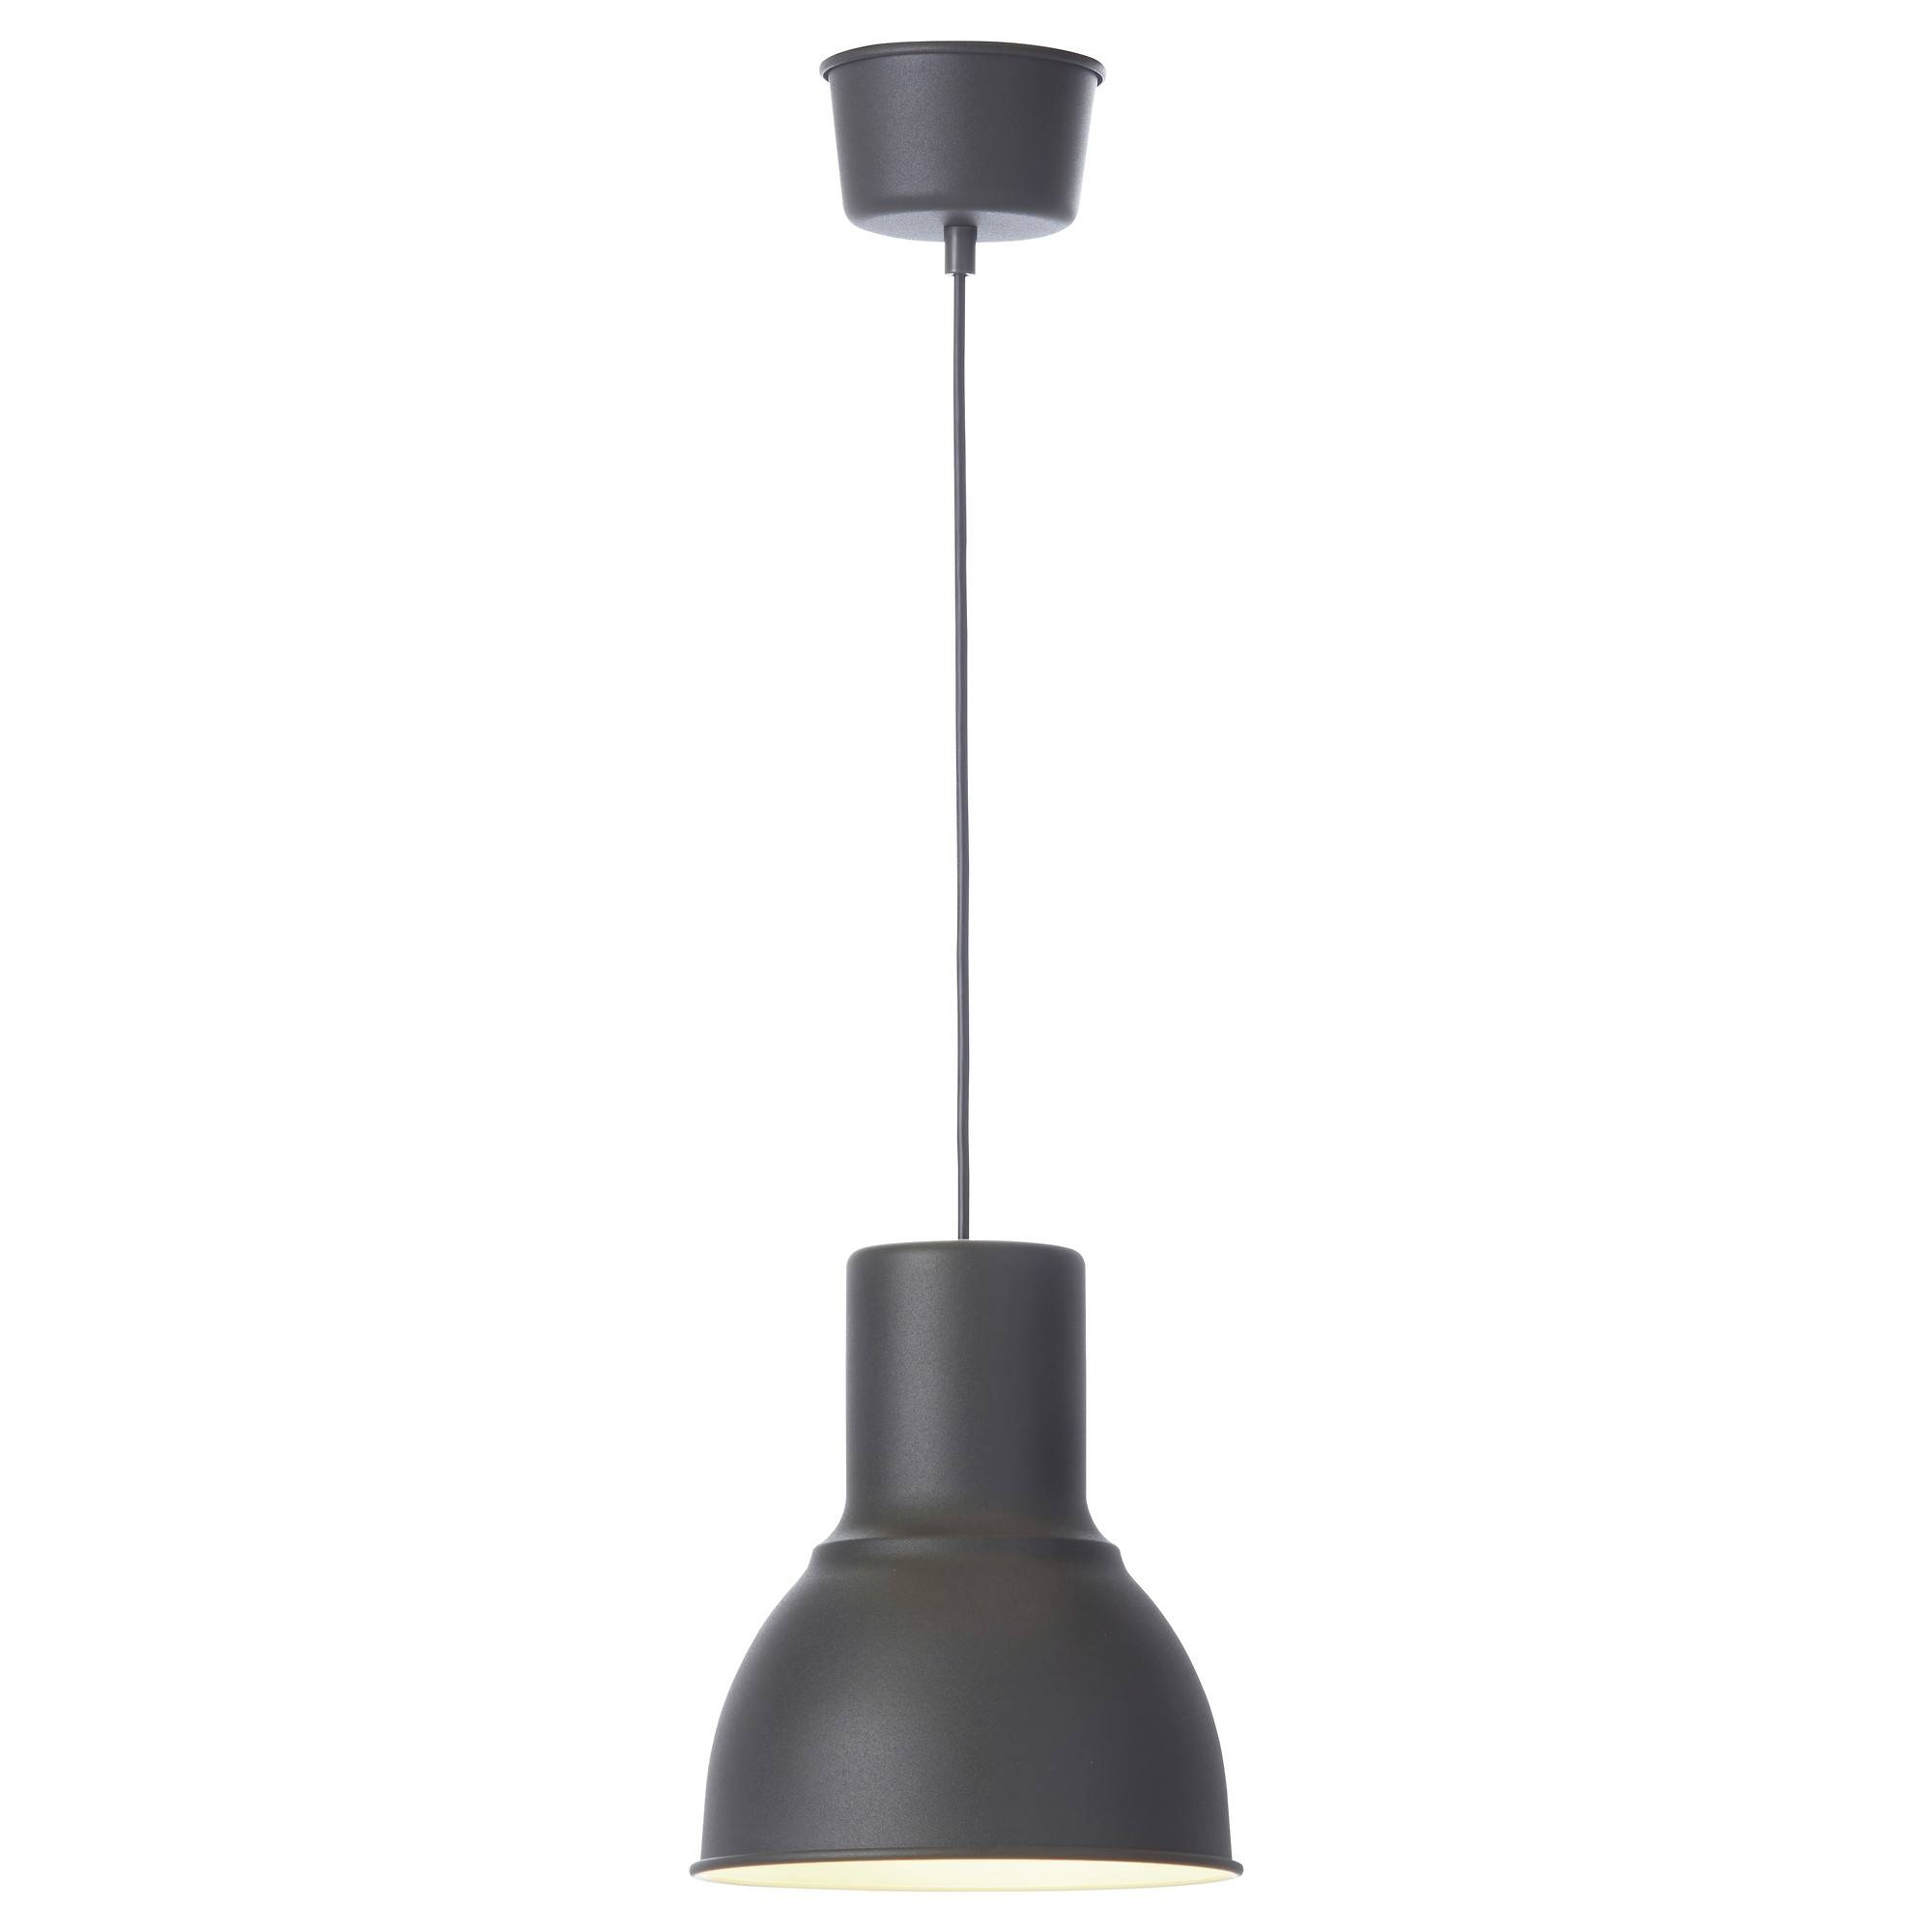 Pendant Lights & Lamp Shades - Ikea throughout Ikea Pendants (Image 11 of 15)